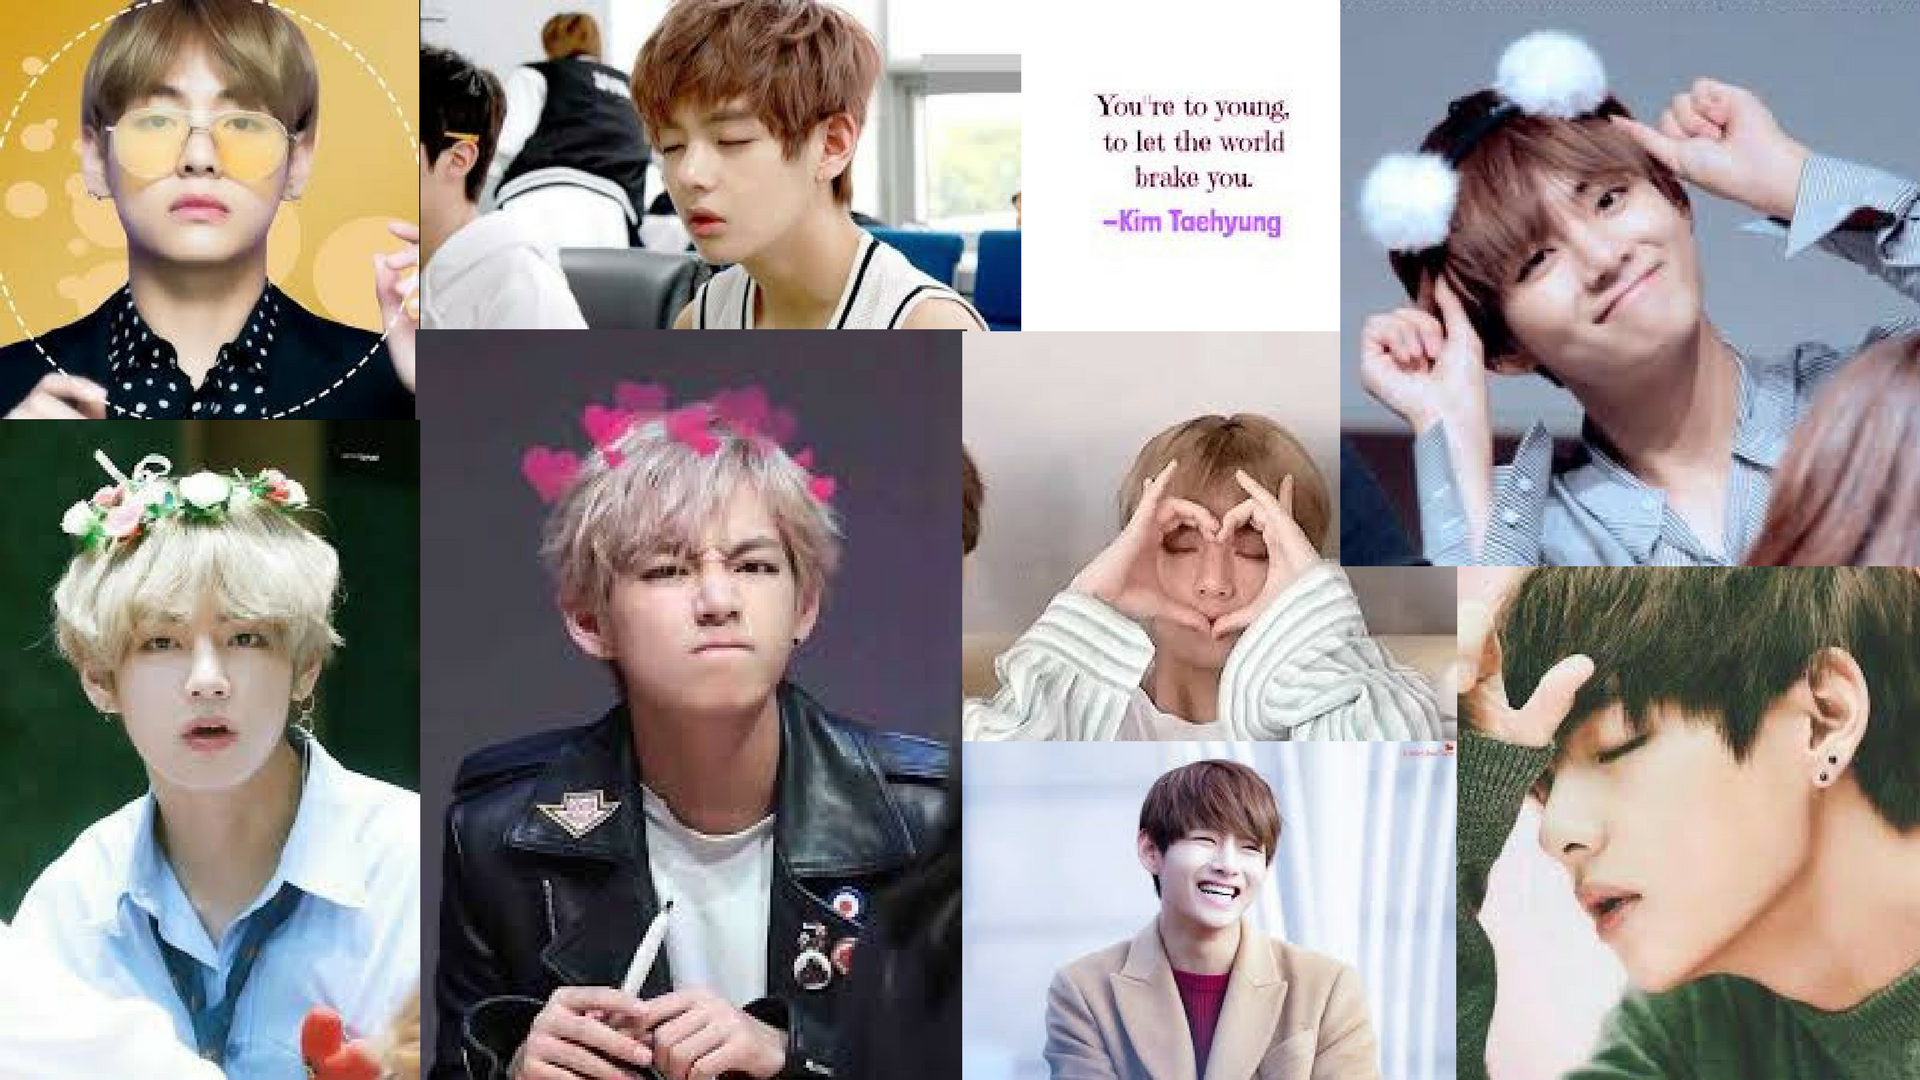 Taehyung Computer Wallpaper Posted By John Peltier